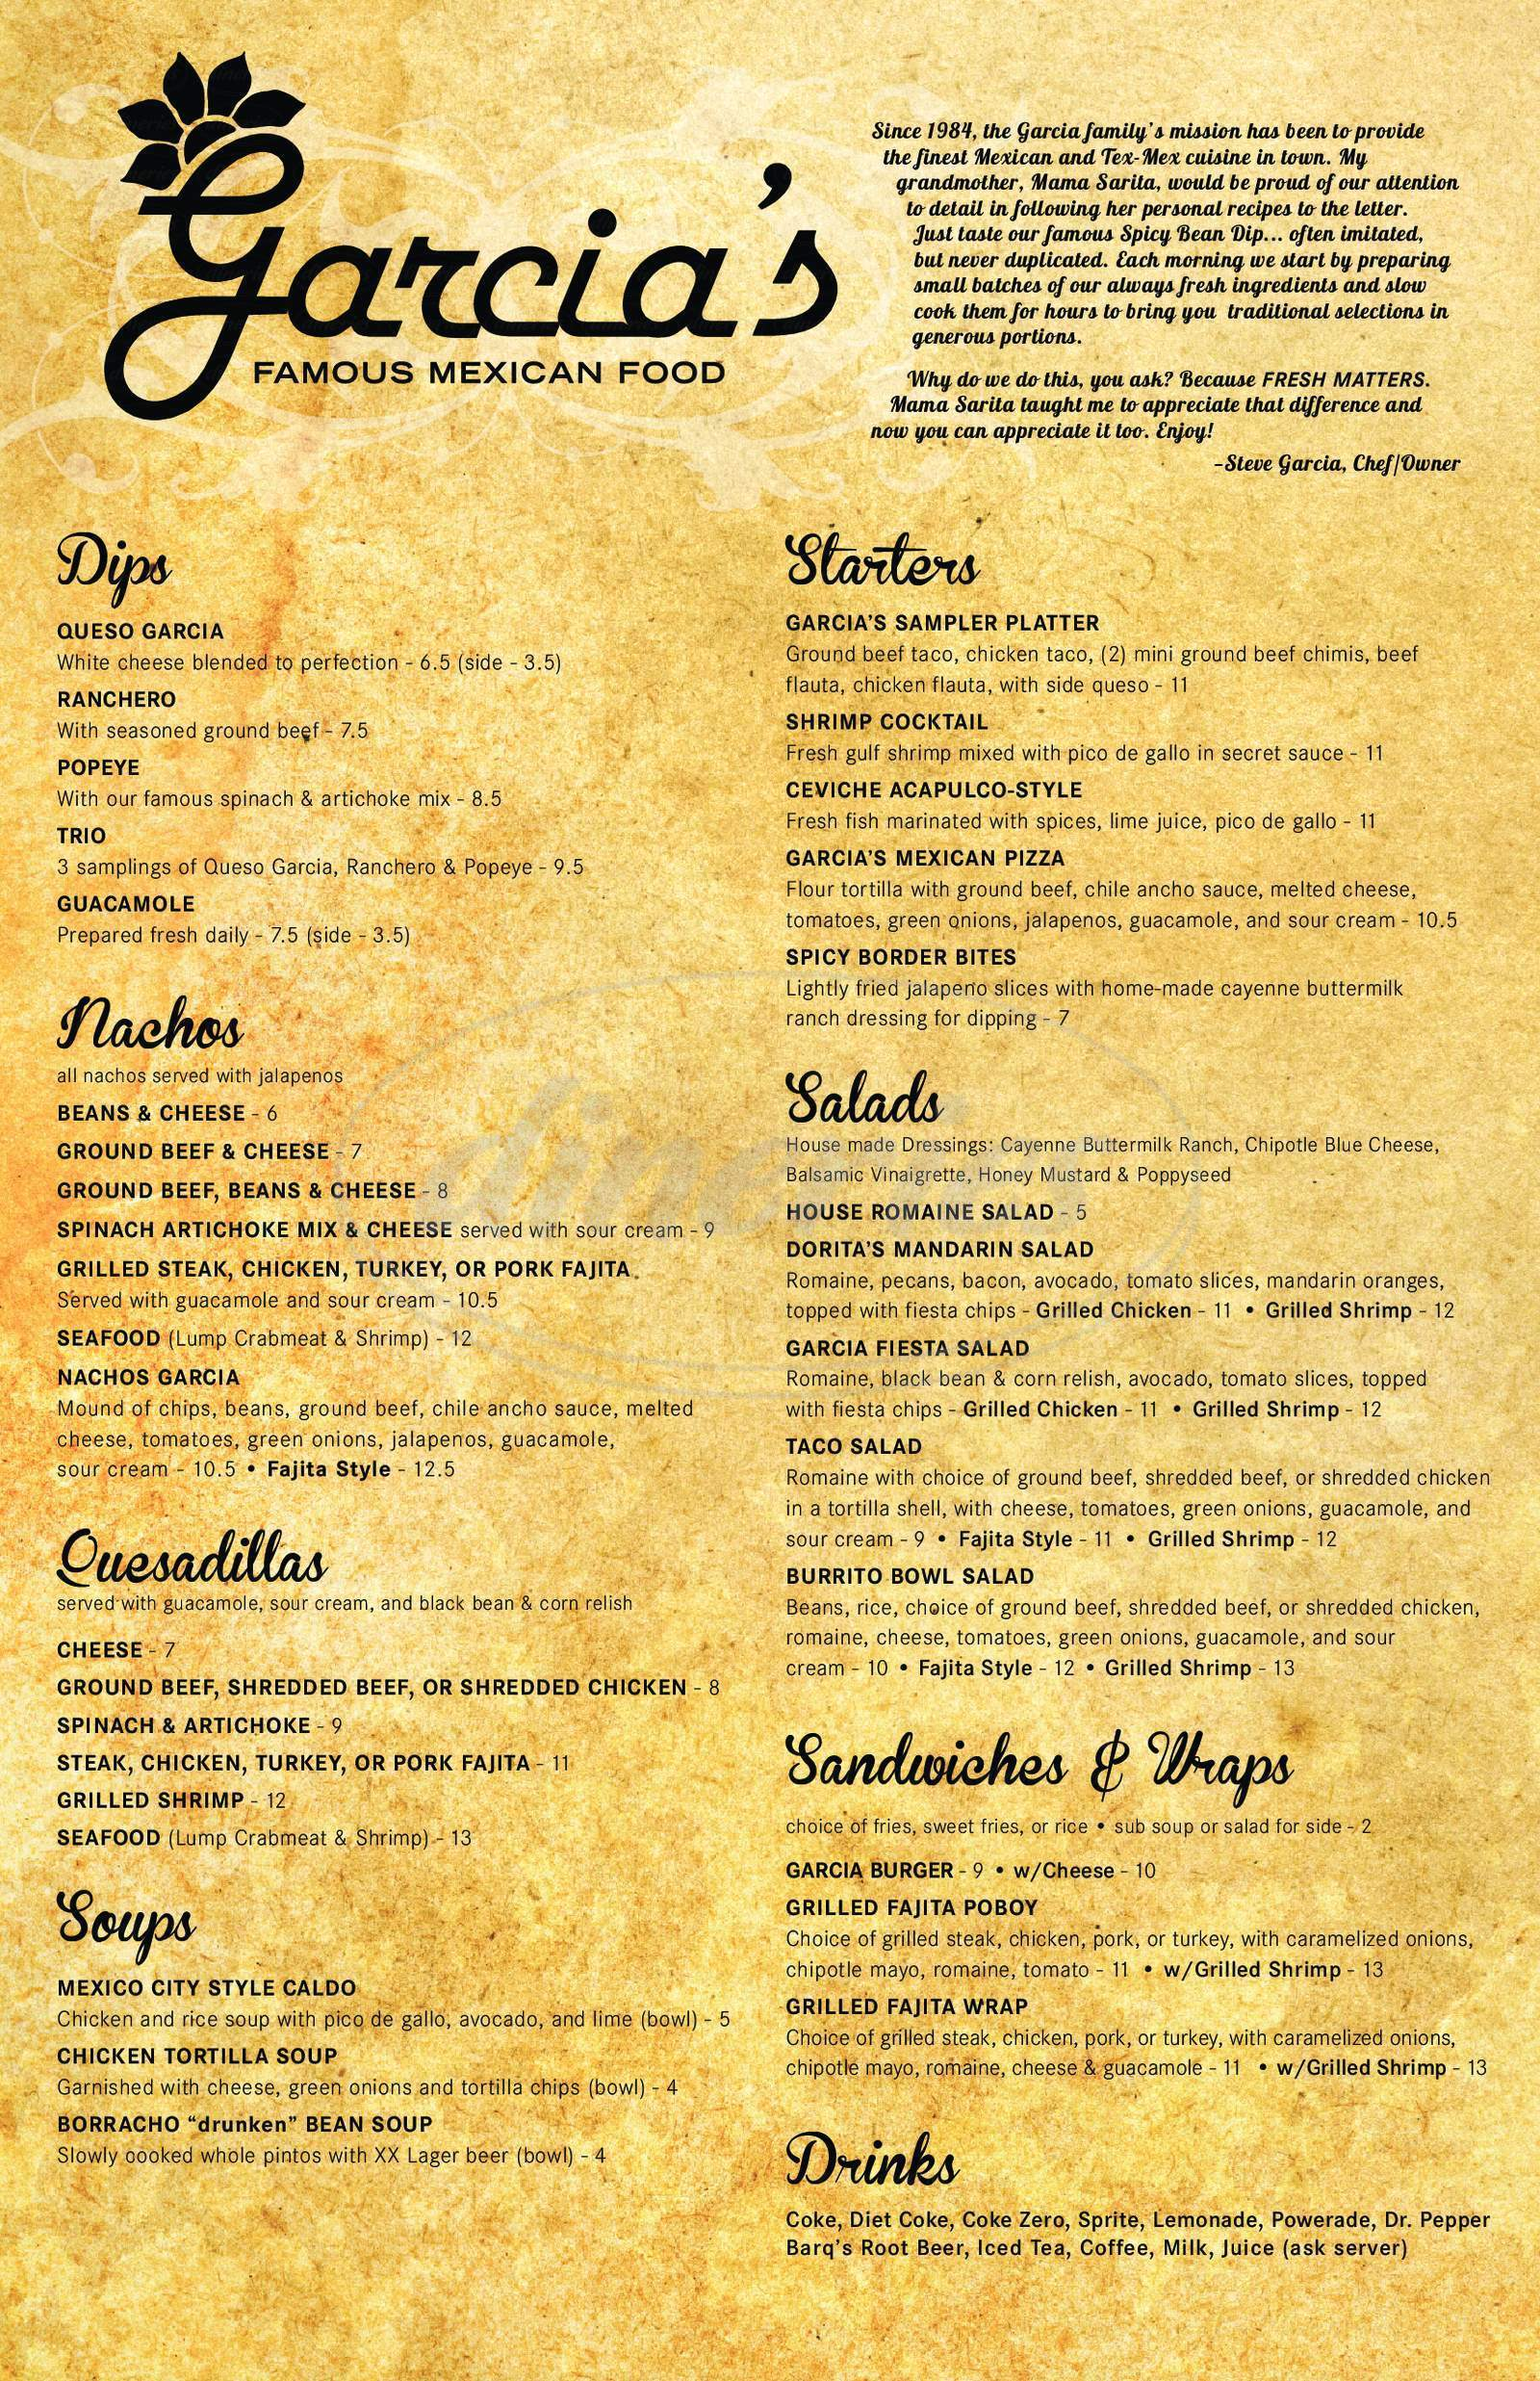 menu for Garcia's Famous Mexican Food